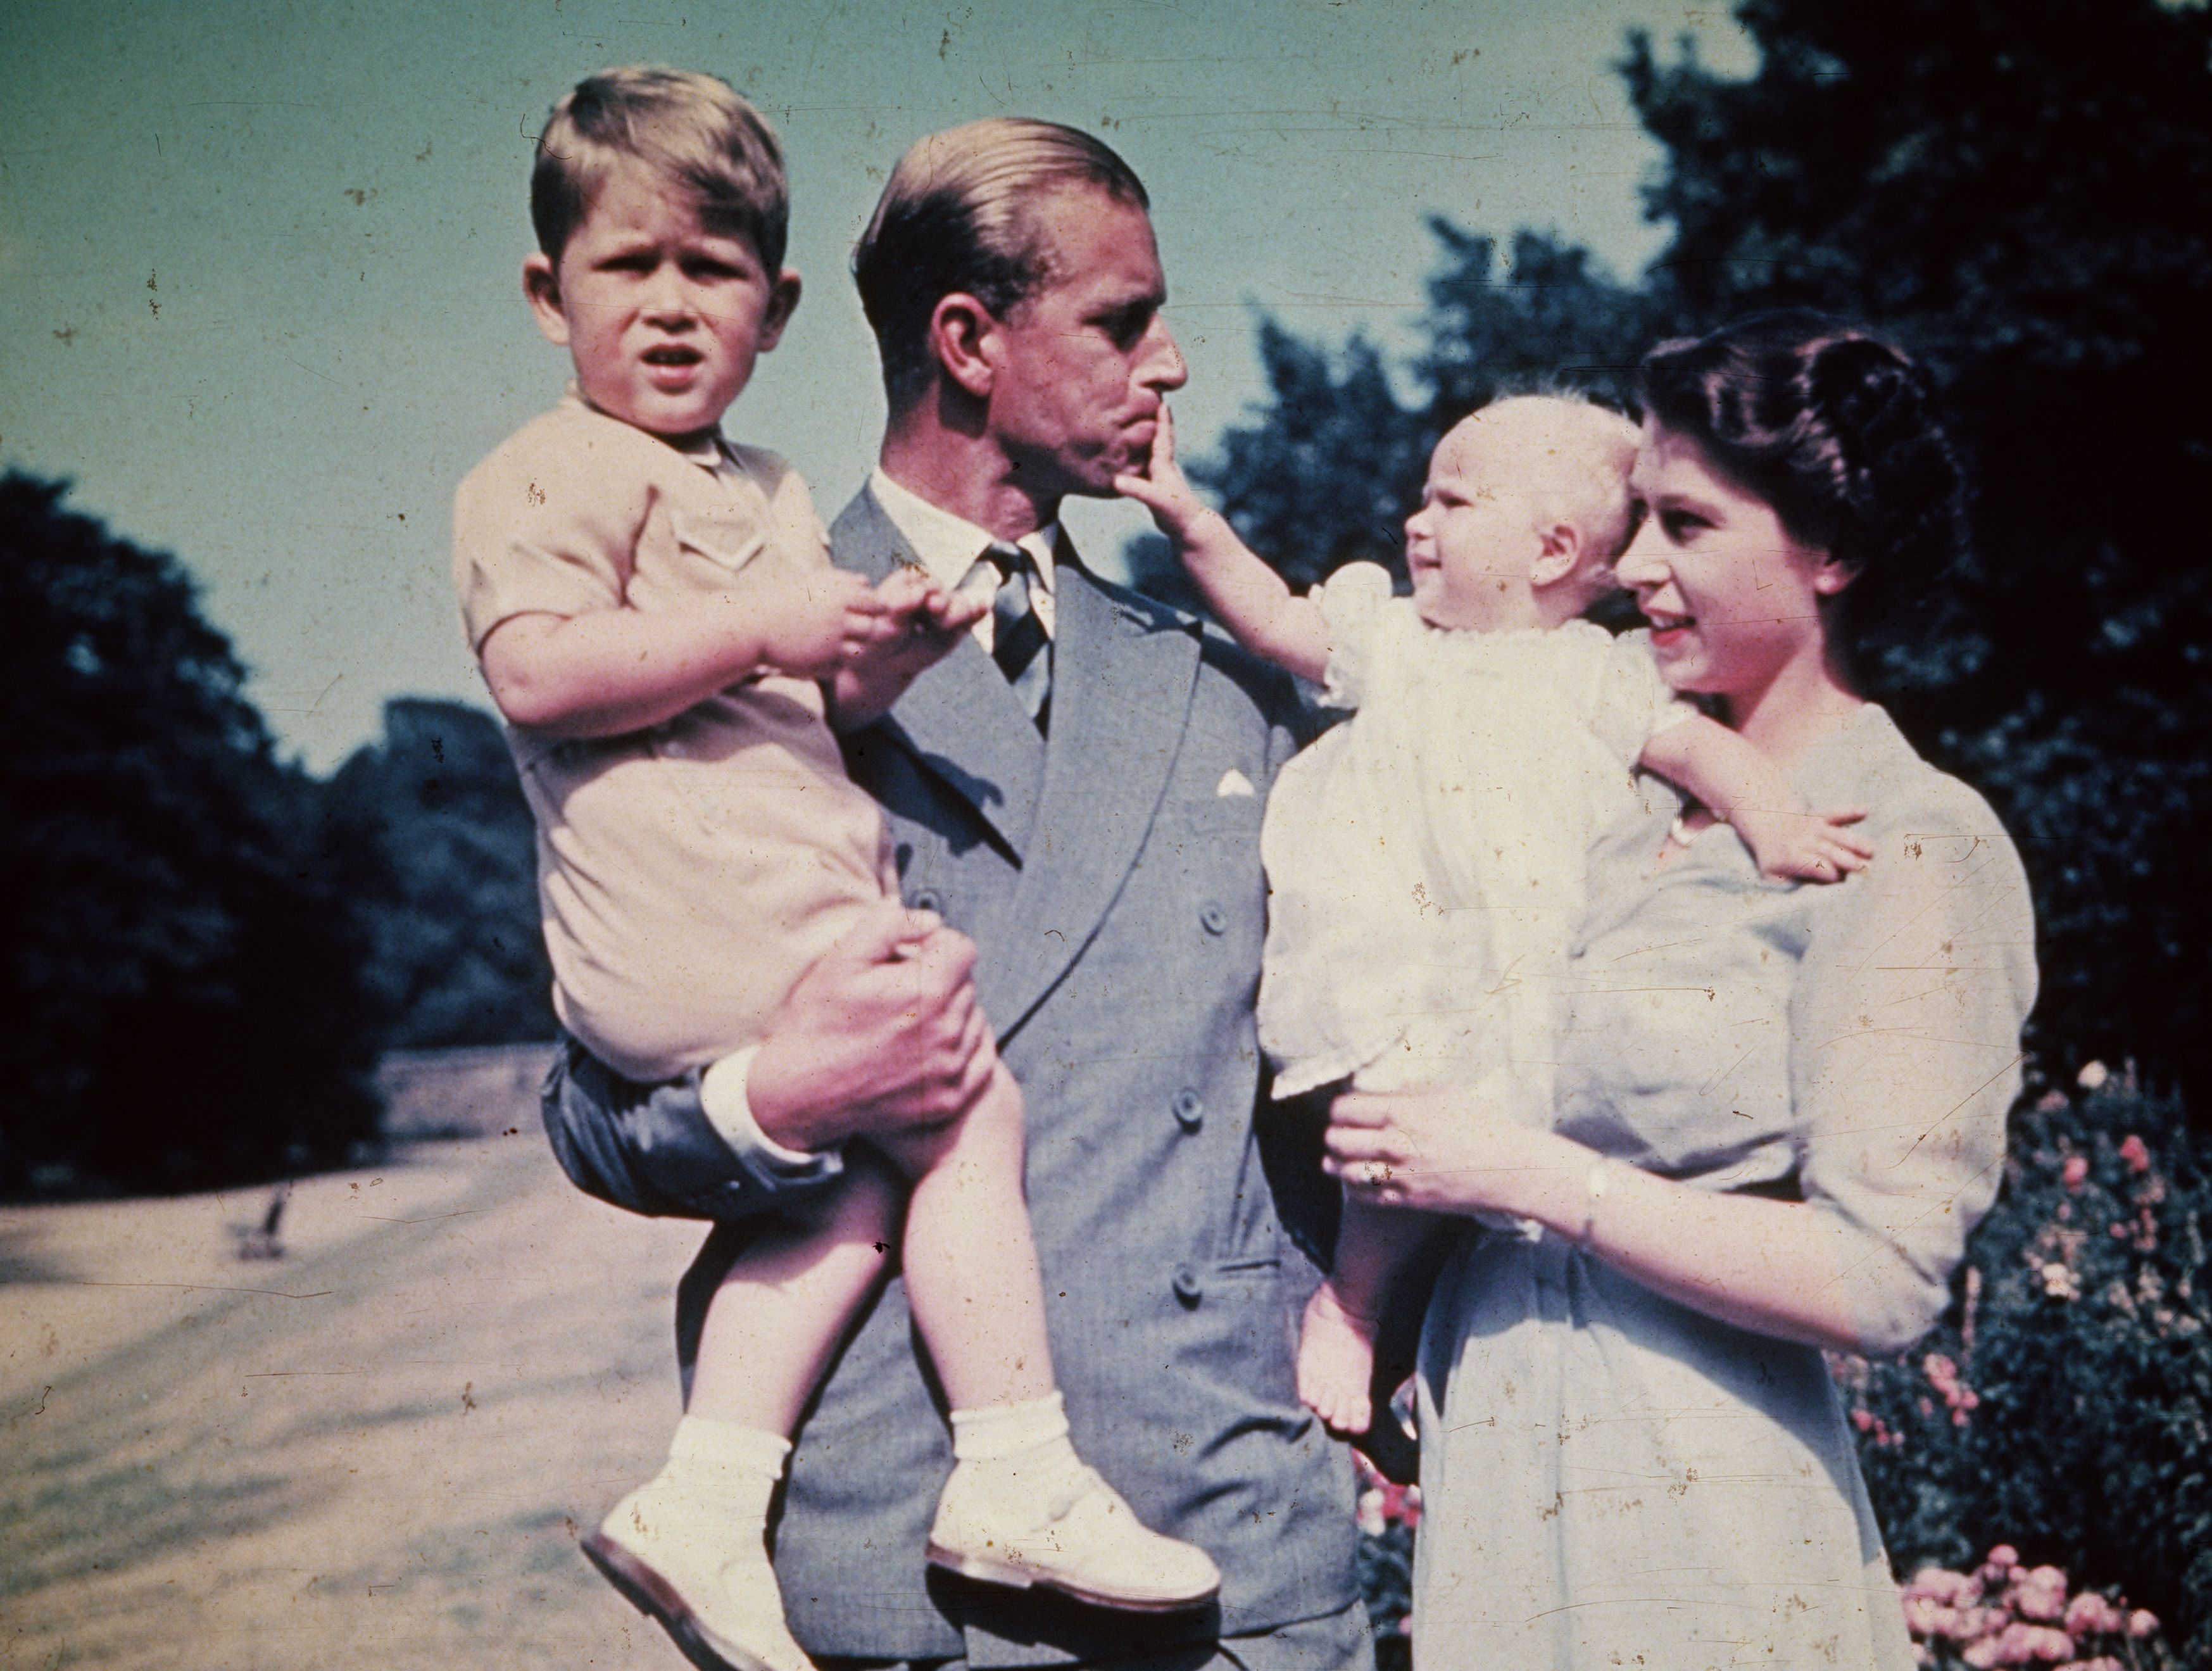 Then-Princess Elizabeth with Prince Philip and their two children, Charles and Anne, in 1951.